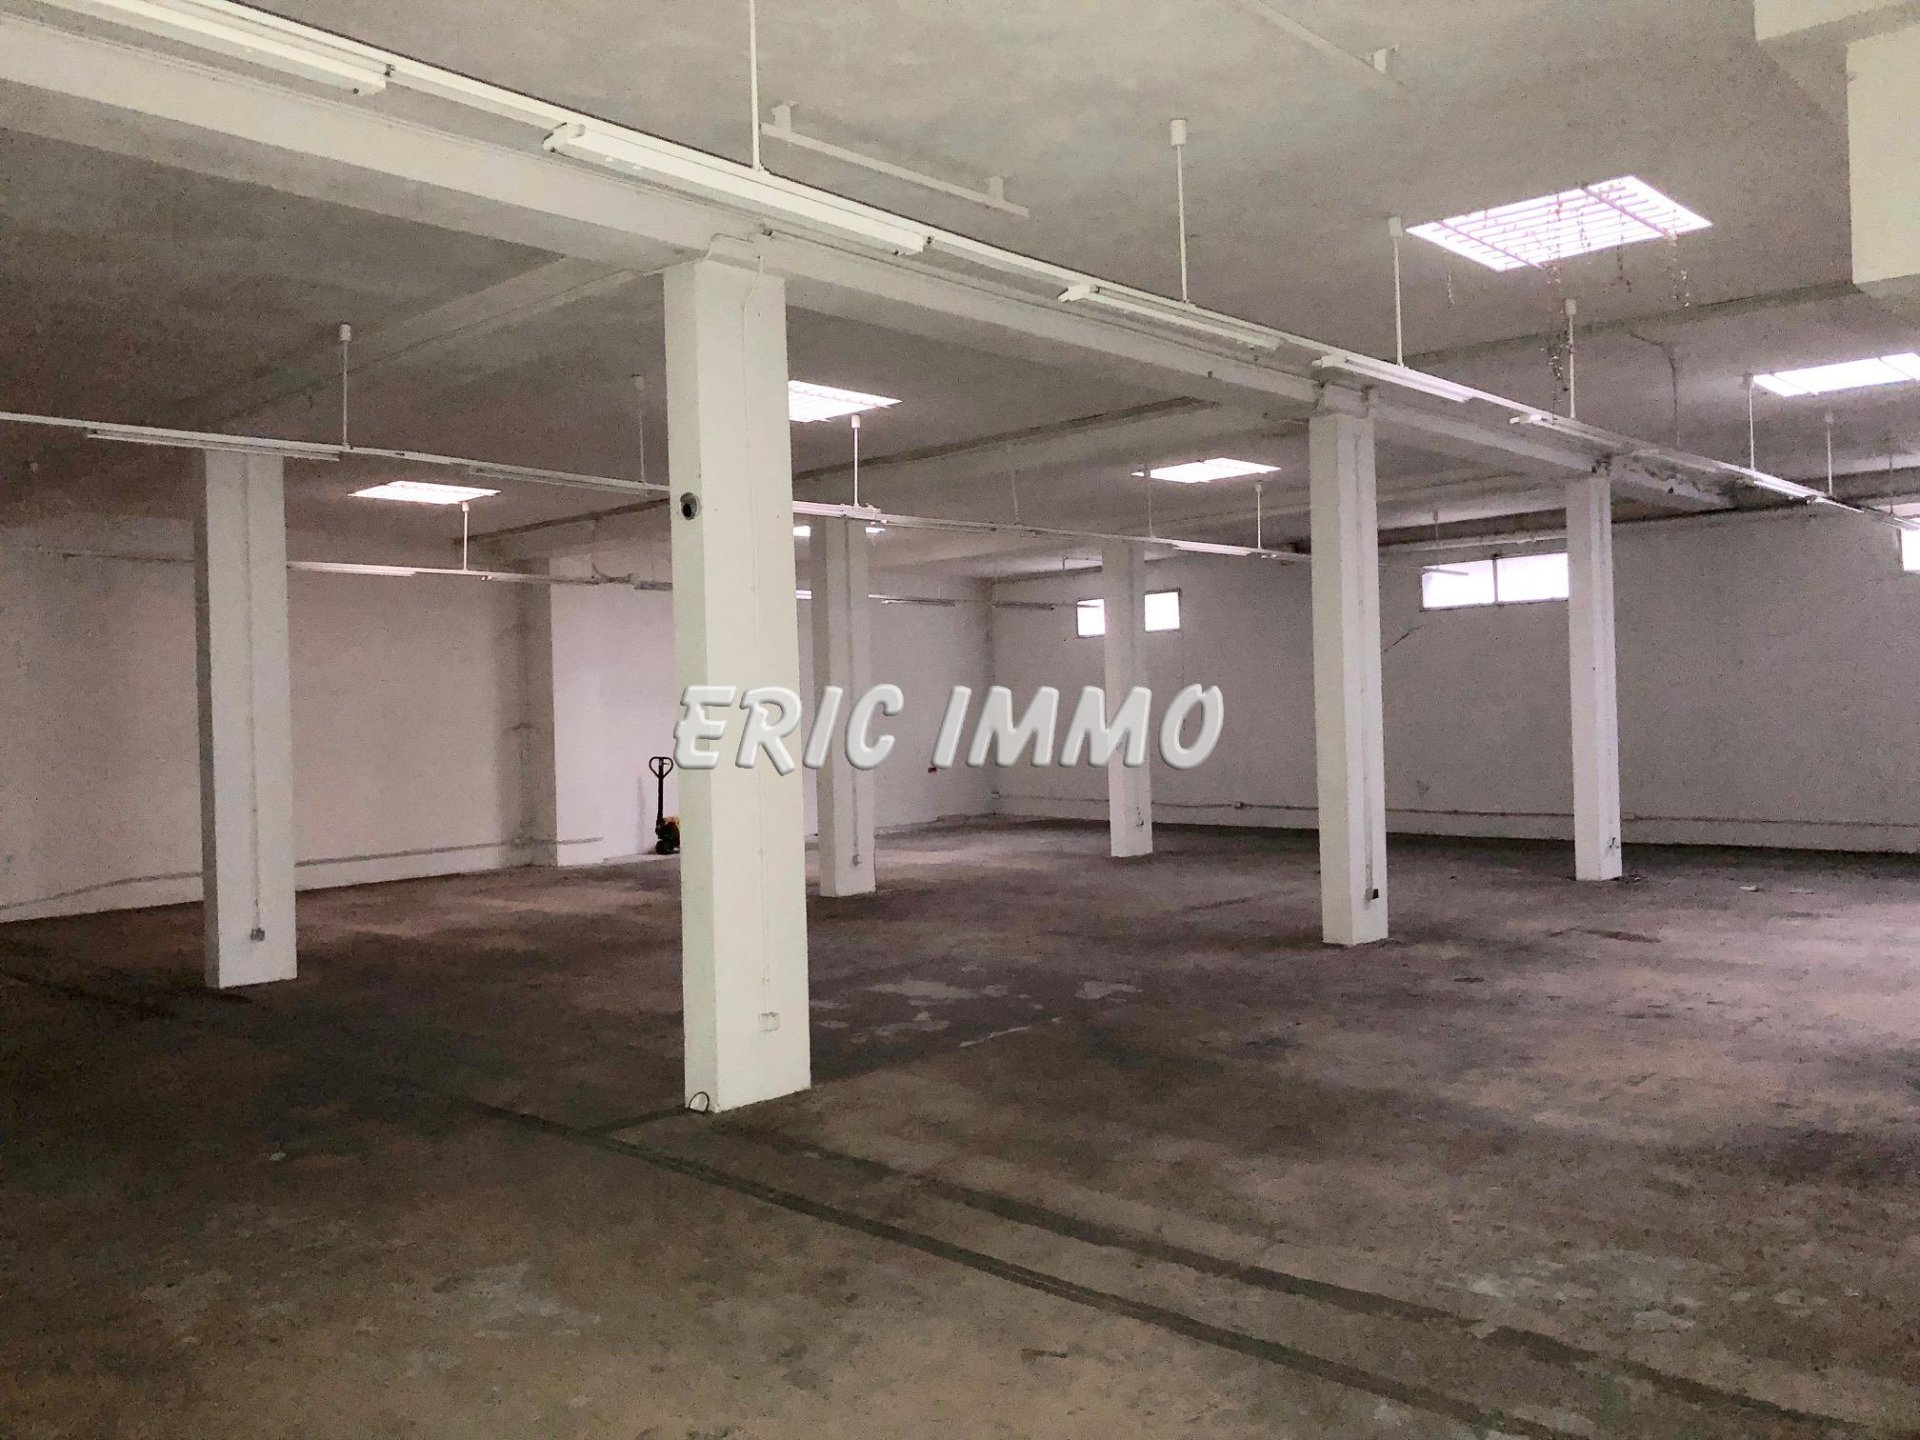 NICE MADELEINE. Location Local commercial 300m2